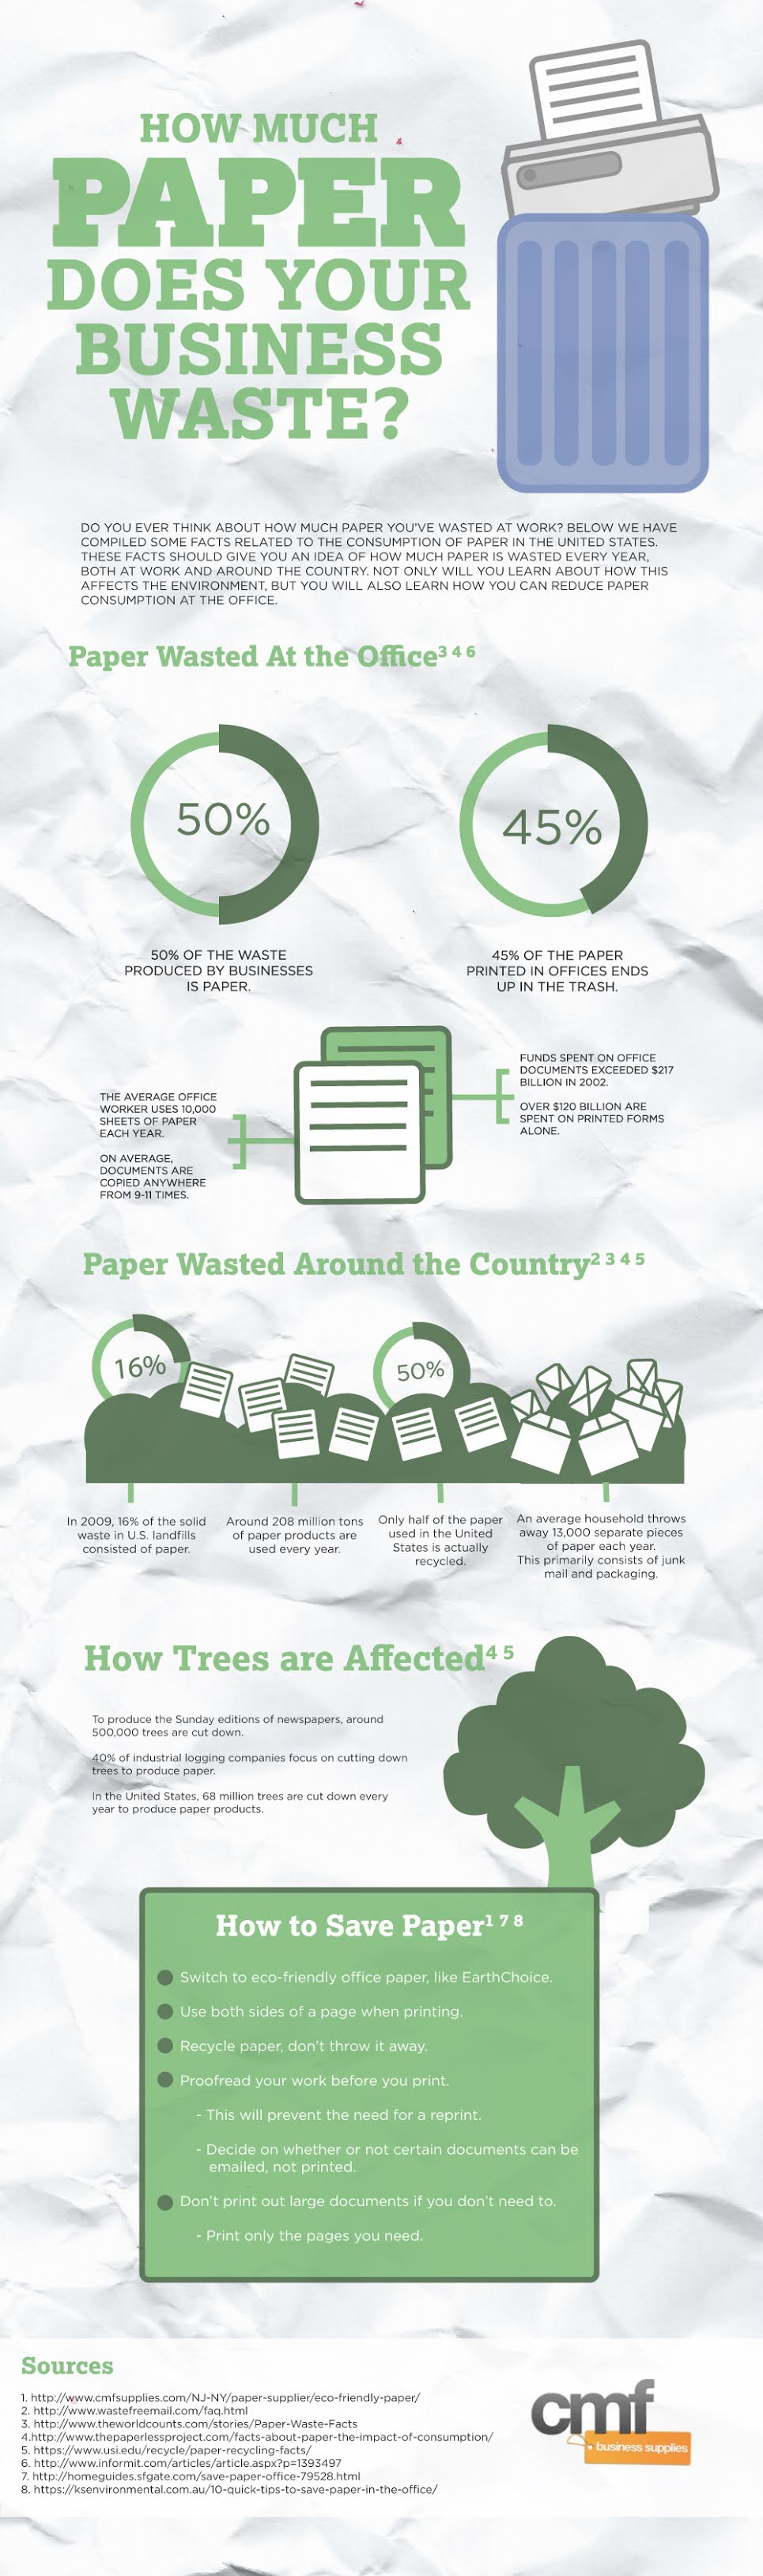 How Much Paper Does Your Business Waste? #infographic #Business Waste #infographics #Paper Waste #Business